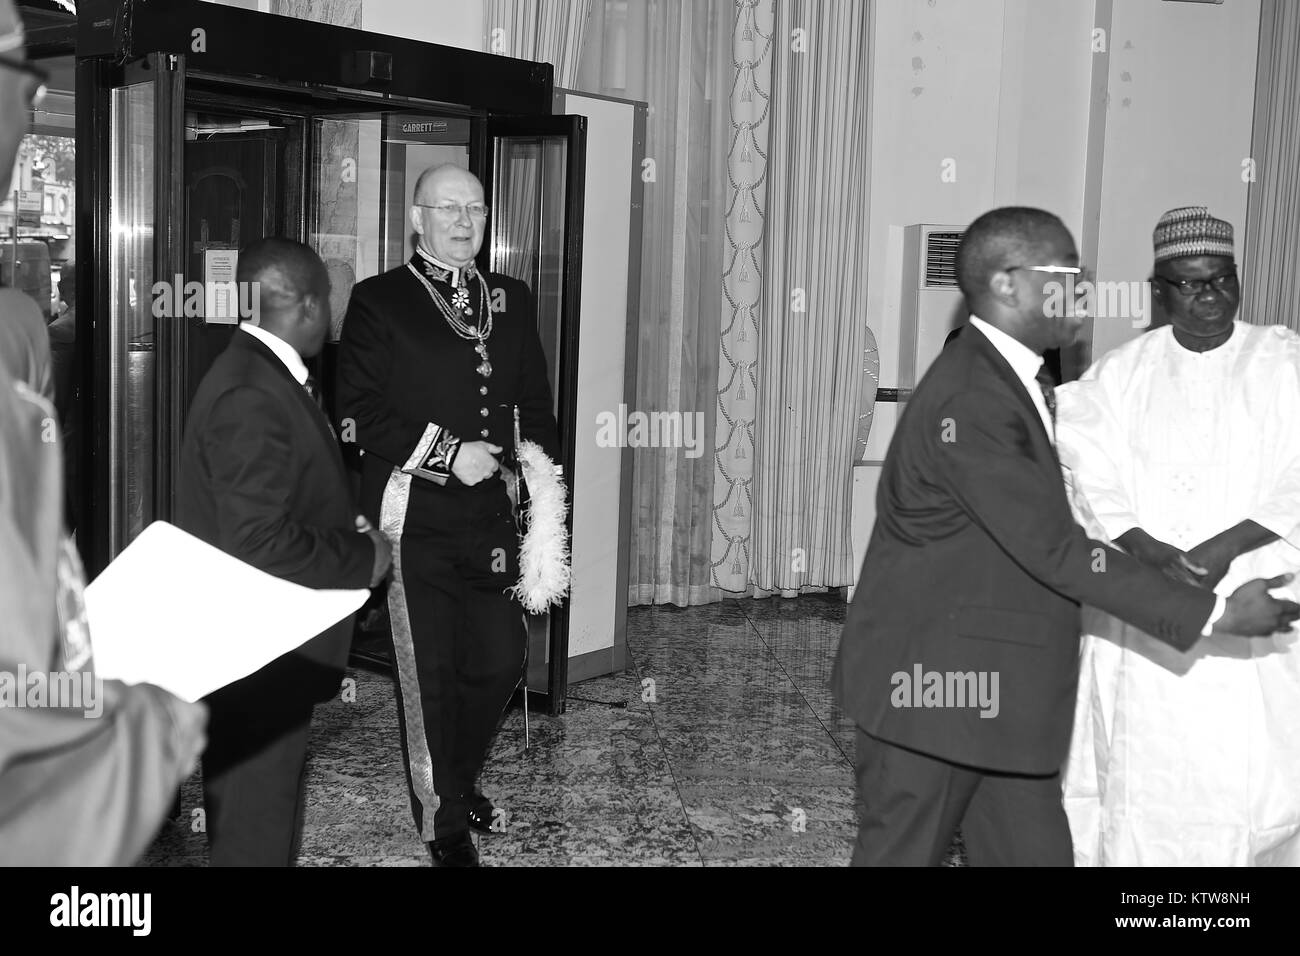 Nigerian High Commissioner presents his credentials to  the Queen in Buckingham Palace 2017 - Stock Image